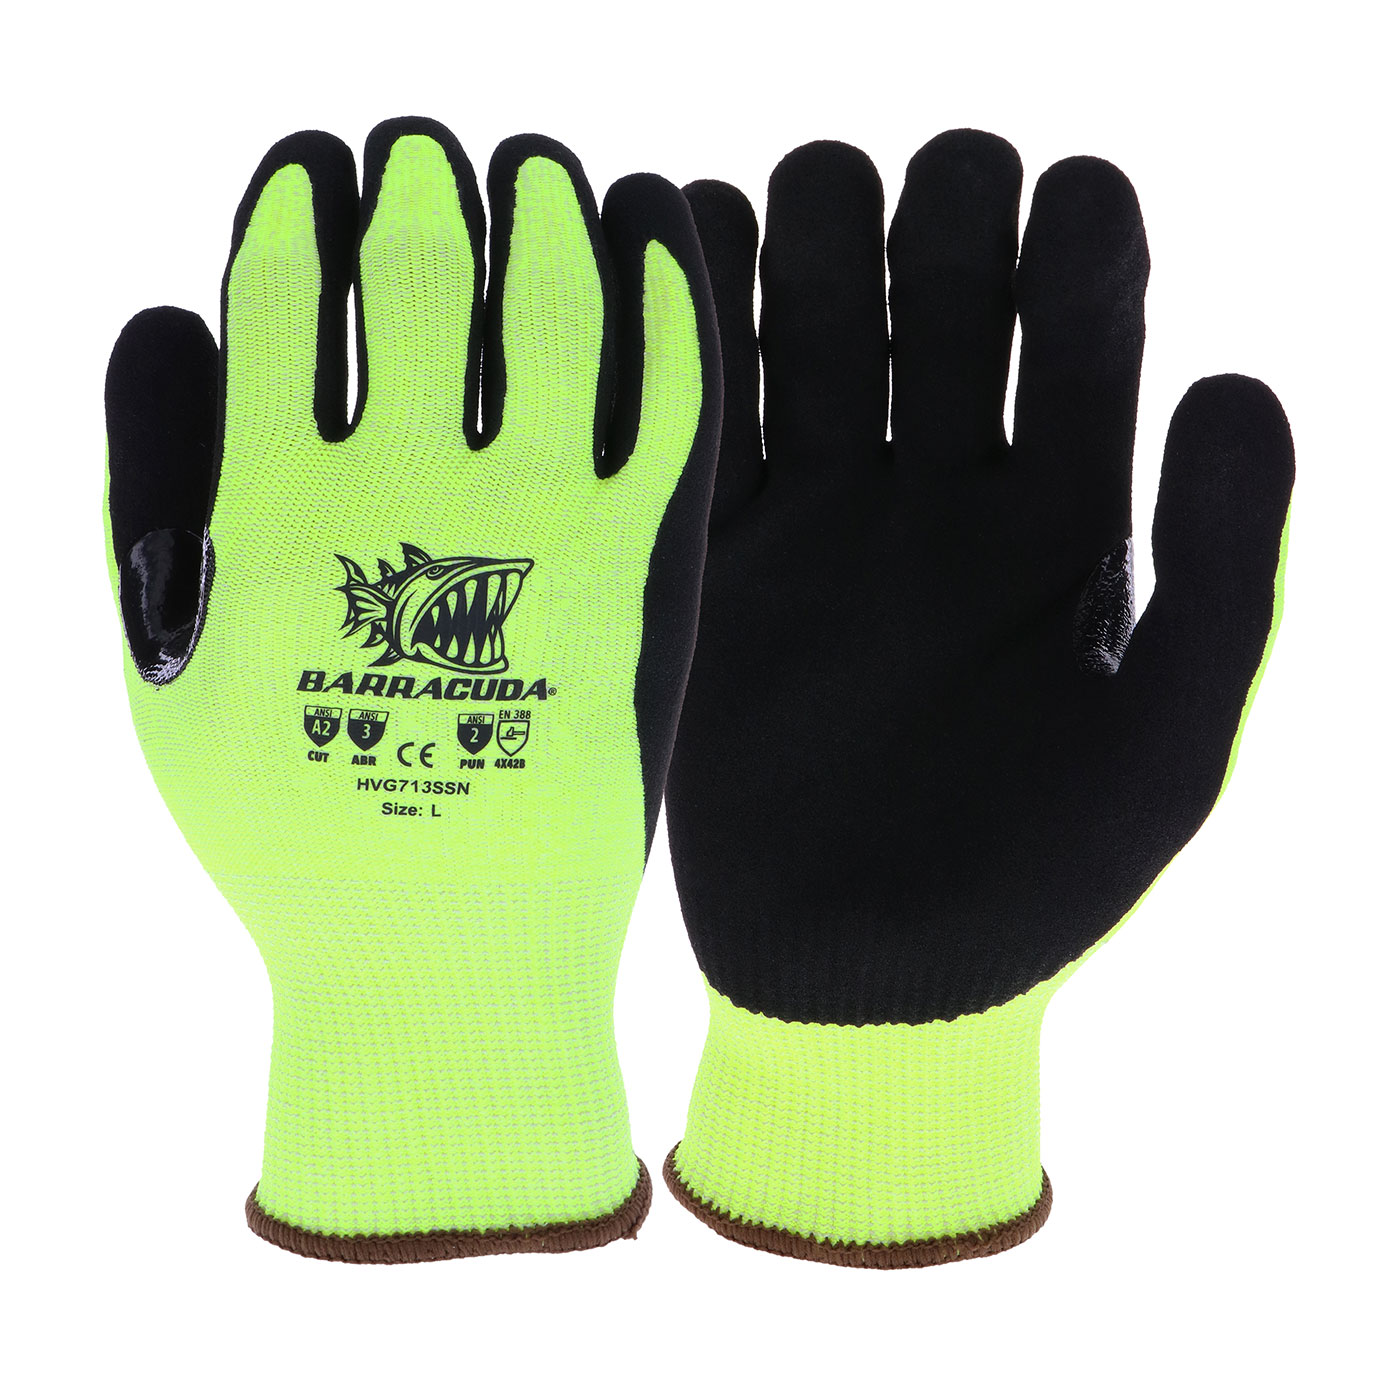 #HVG713SSN PIP® West Chester Hi-vis Barracuda Seamless Knit Touch Glove with Nitrile Coated Palm Grip